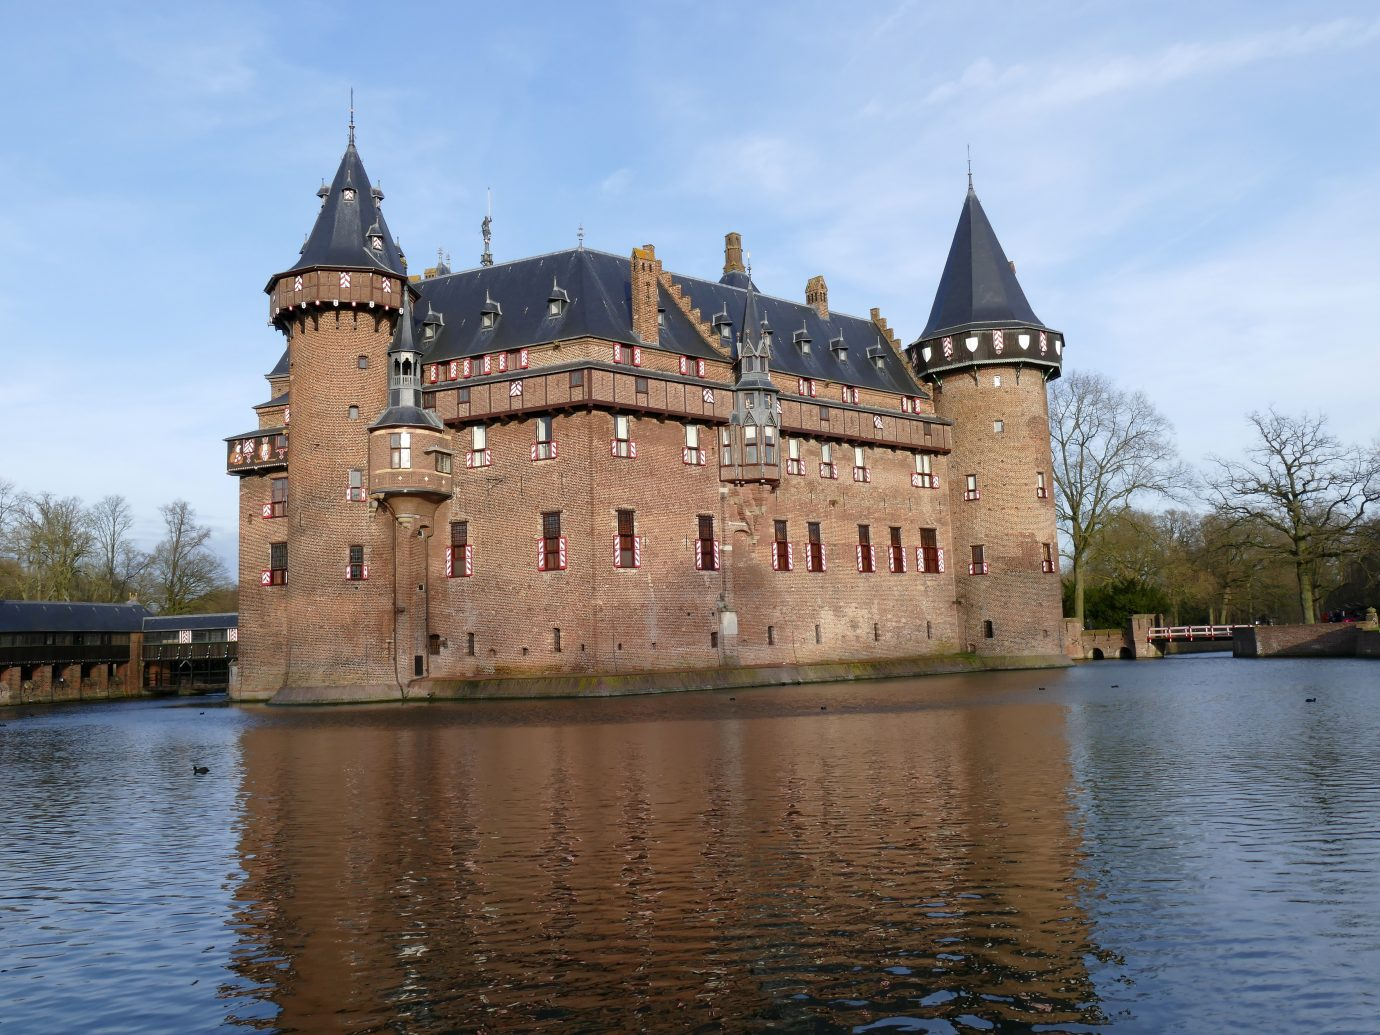 An exterior view of Castle de Haar of the Netherlands.